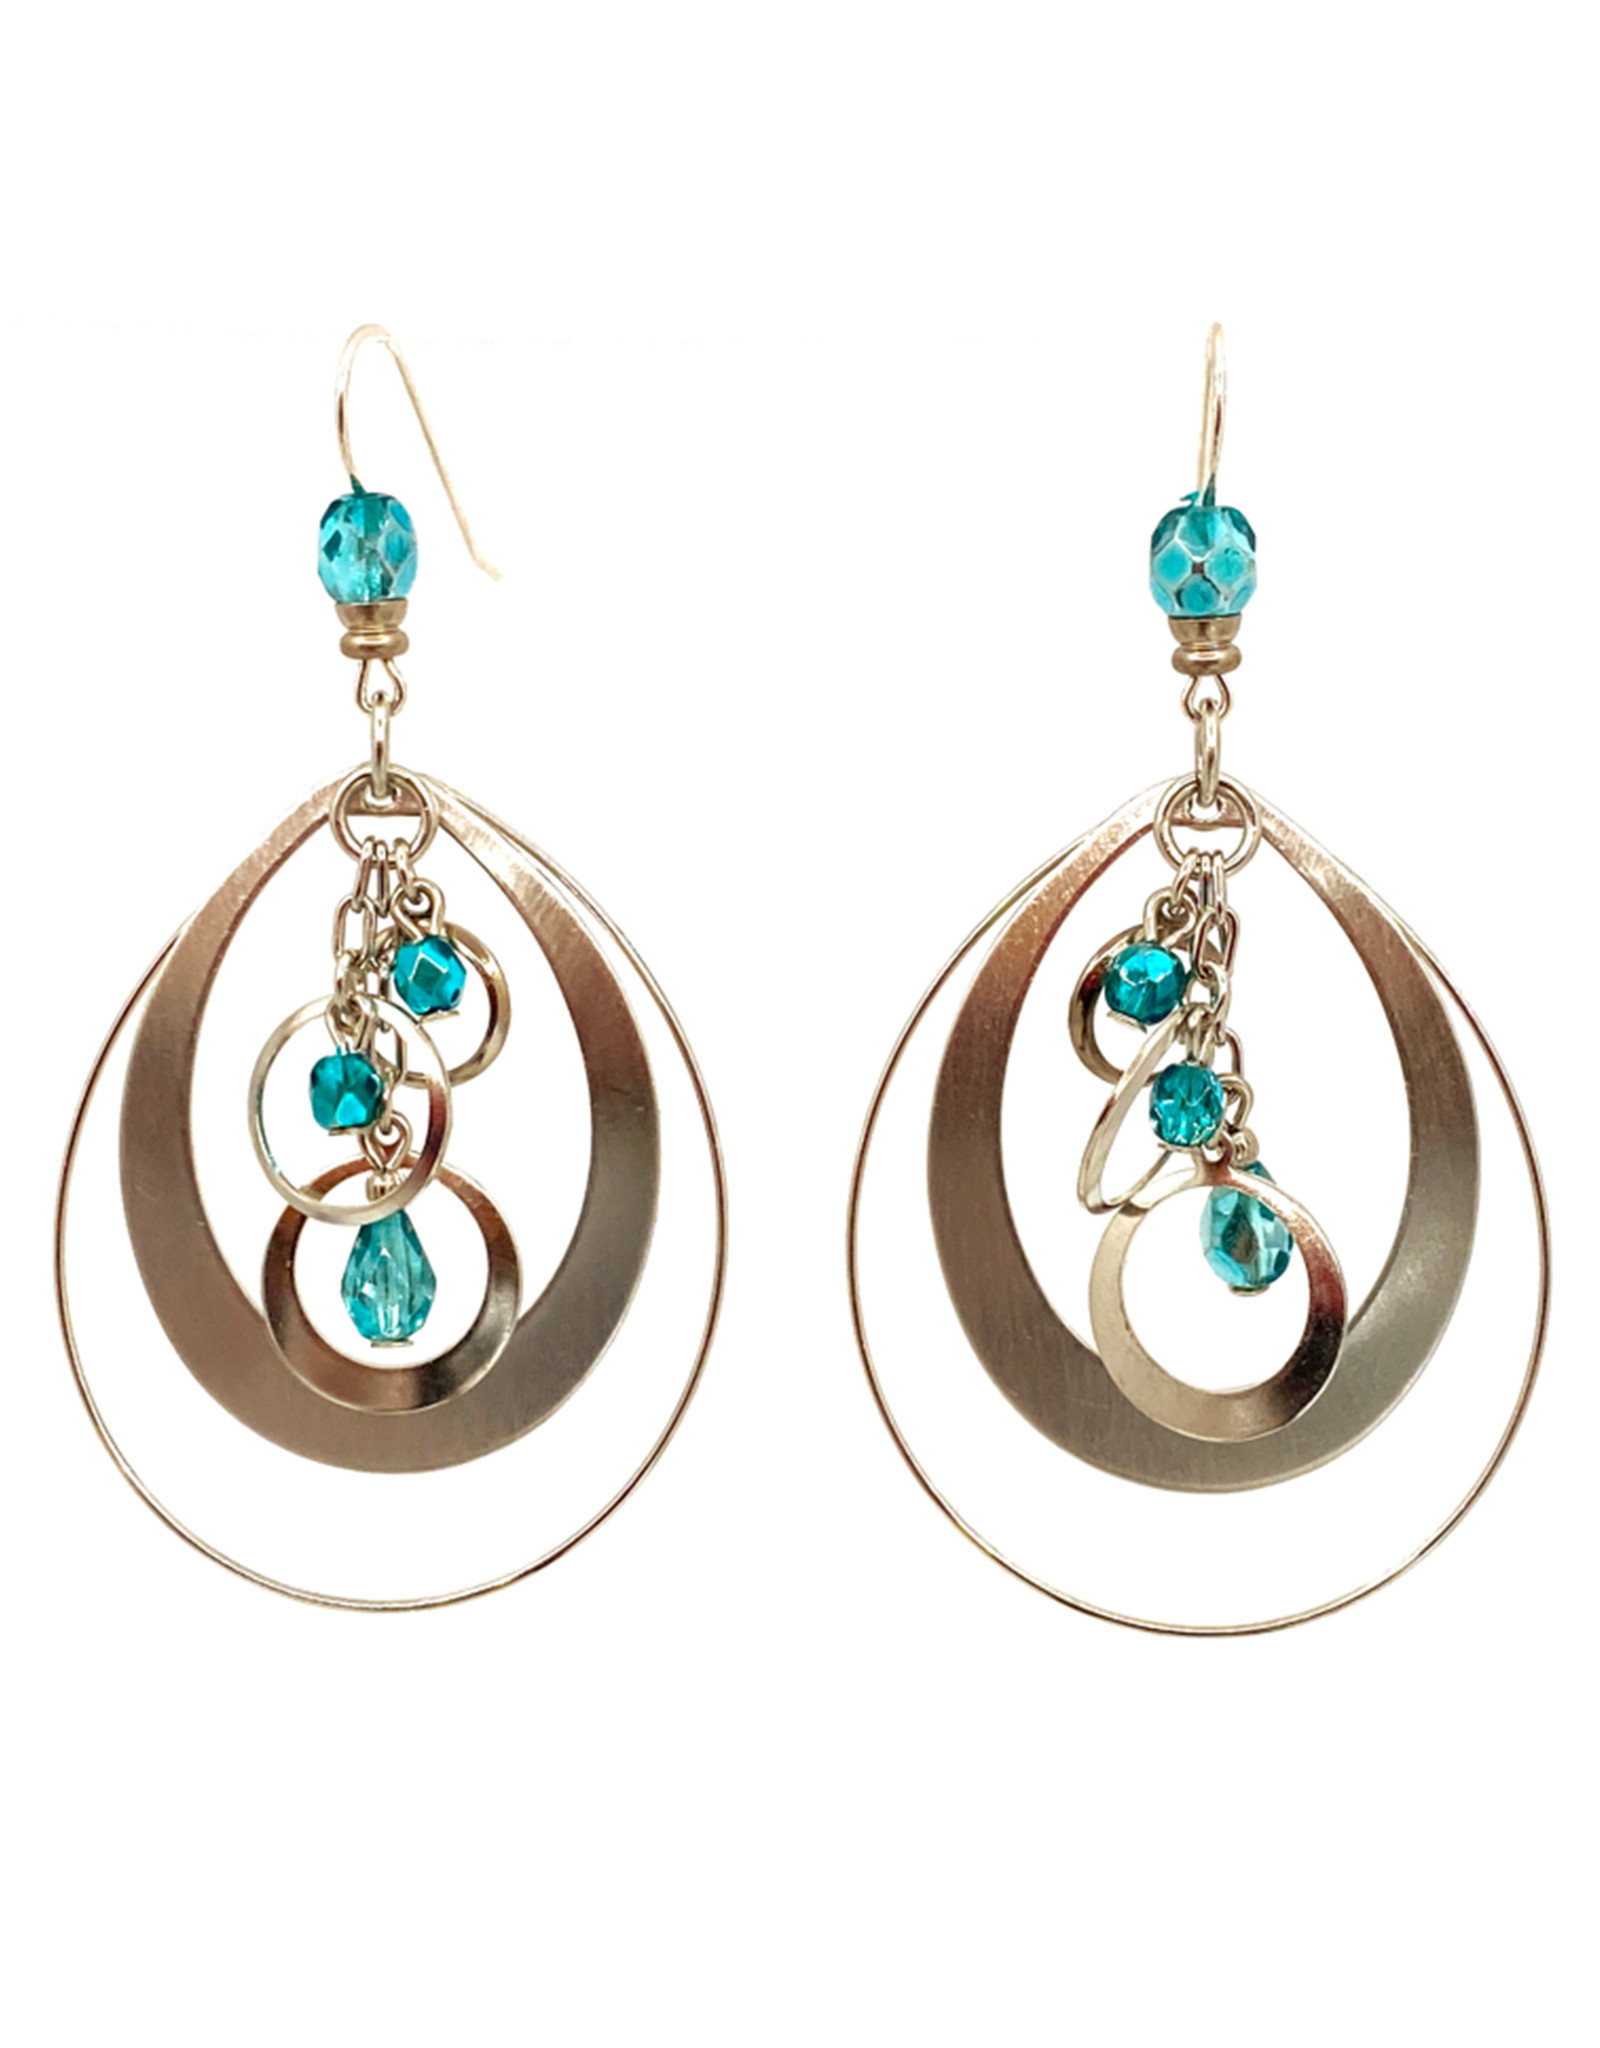 JOHN MICHAEL RICHARDSON PLANETARY ORBS EARRINGS